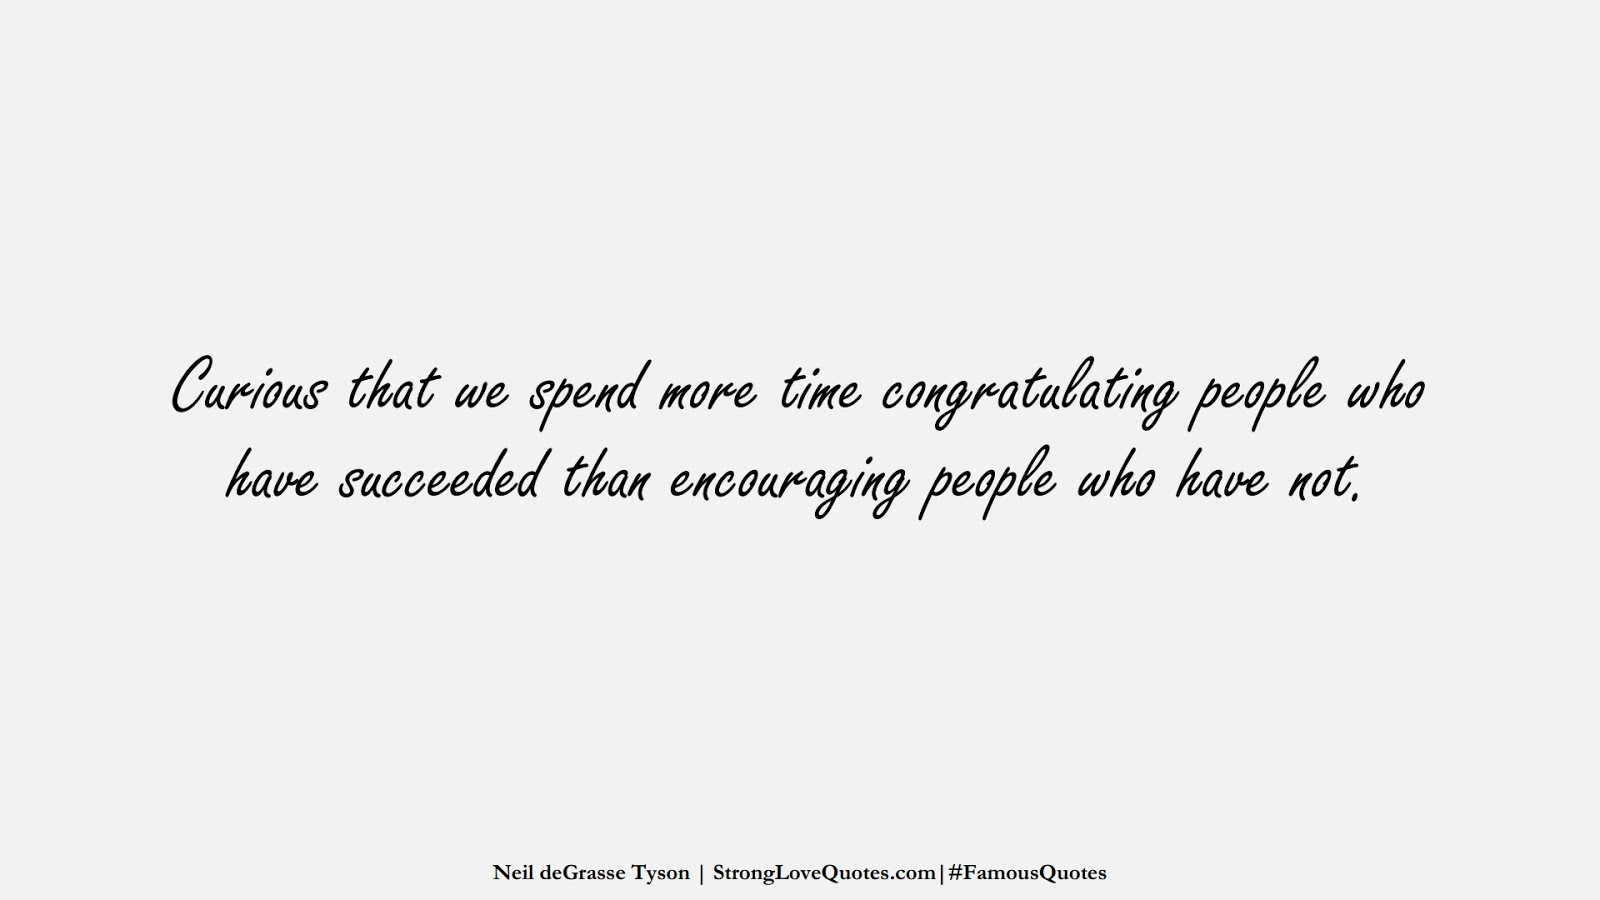 Curious that we spend more time congratulating people who have succeeded than encouraging people who have not. (Neil deGrasse Tyson);  #FamousQuotes